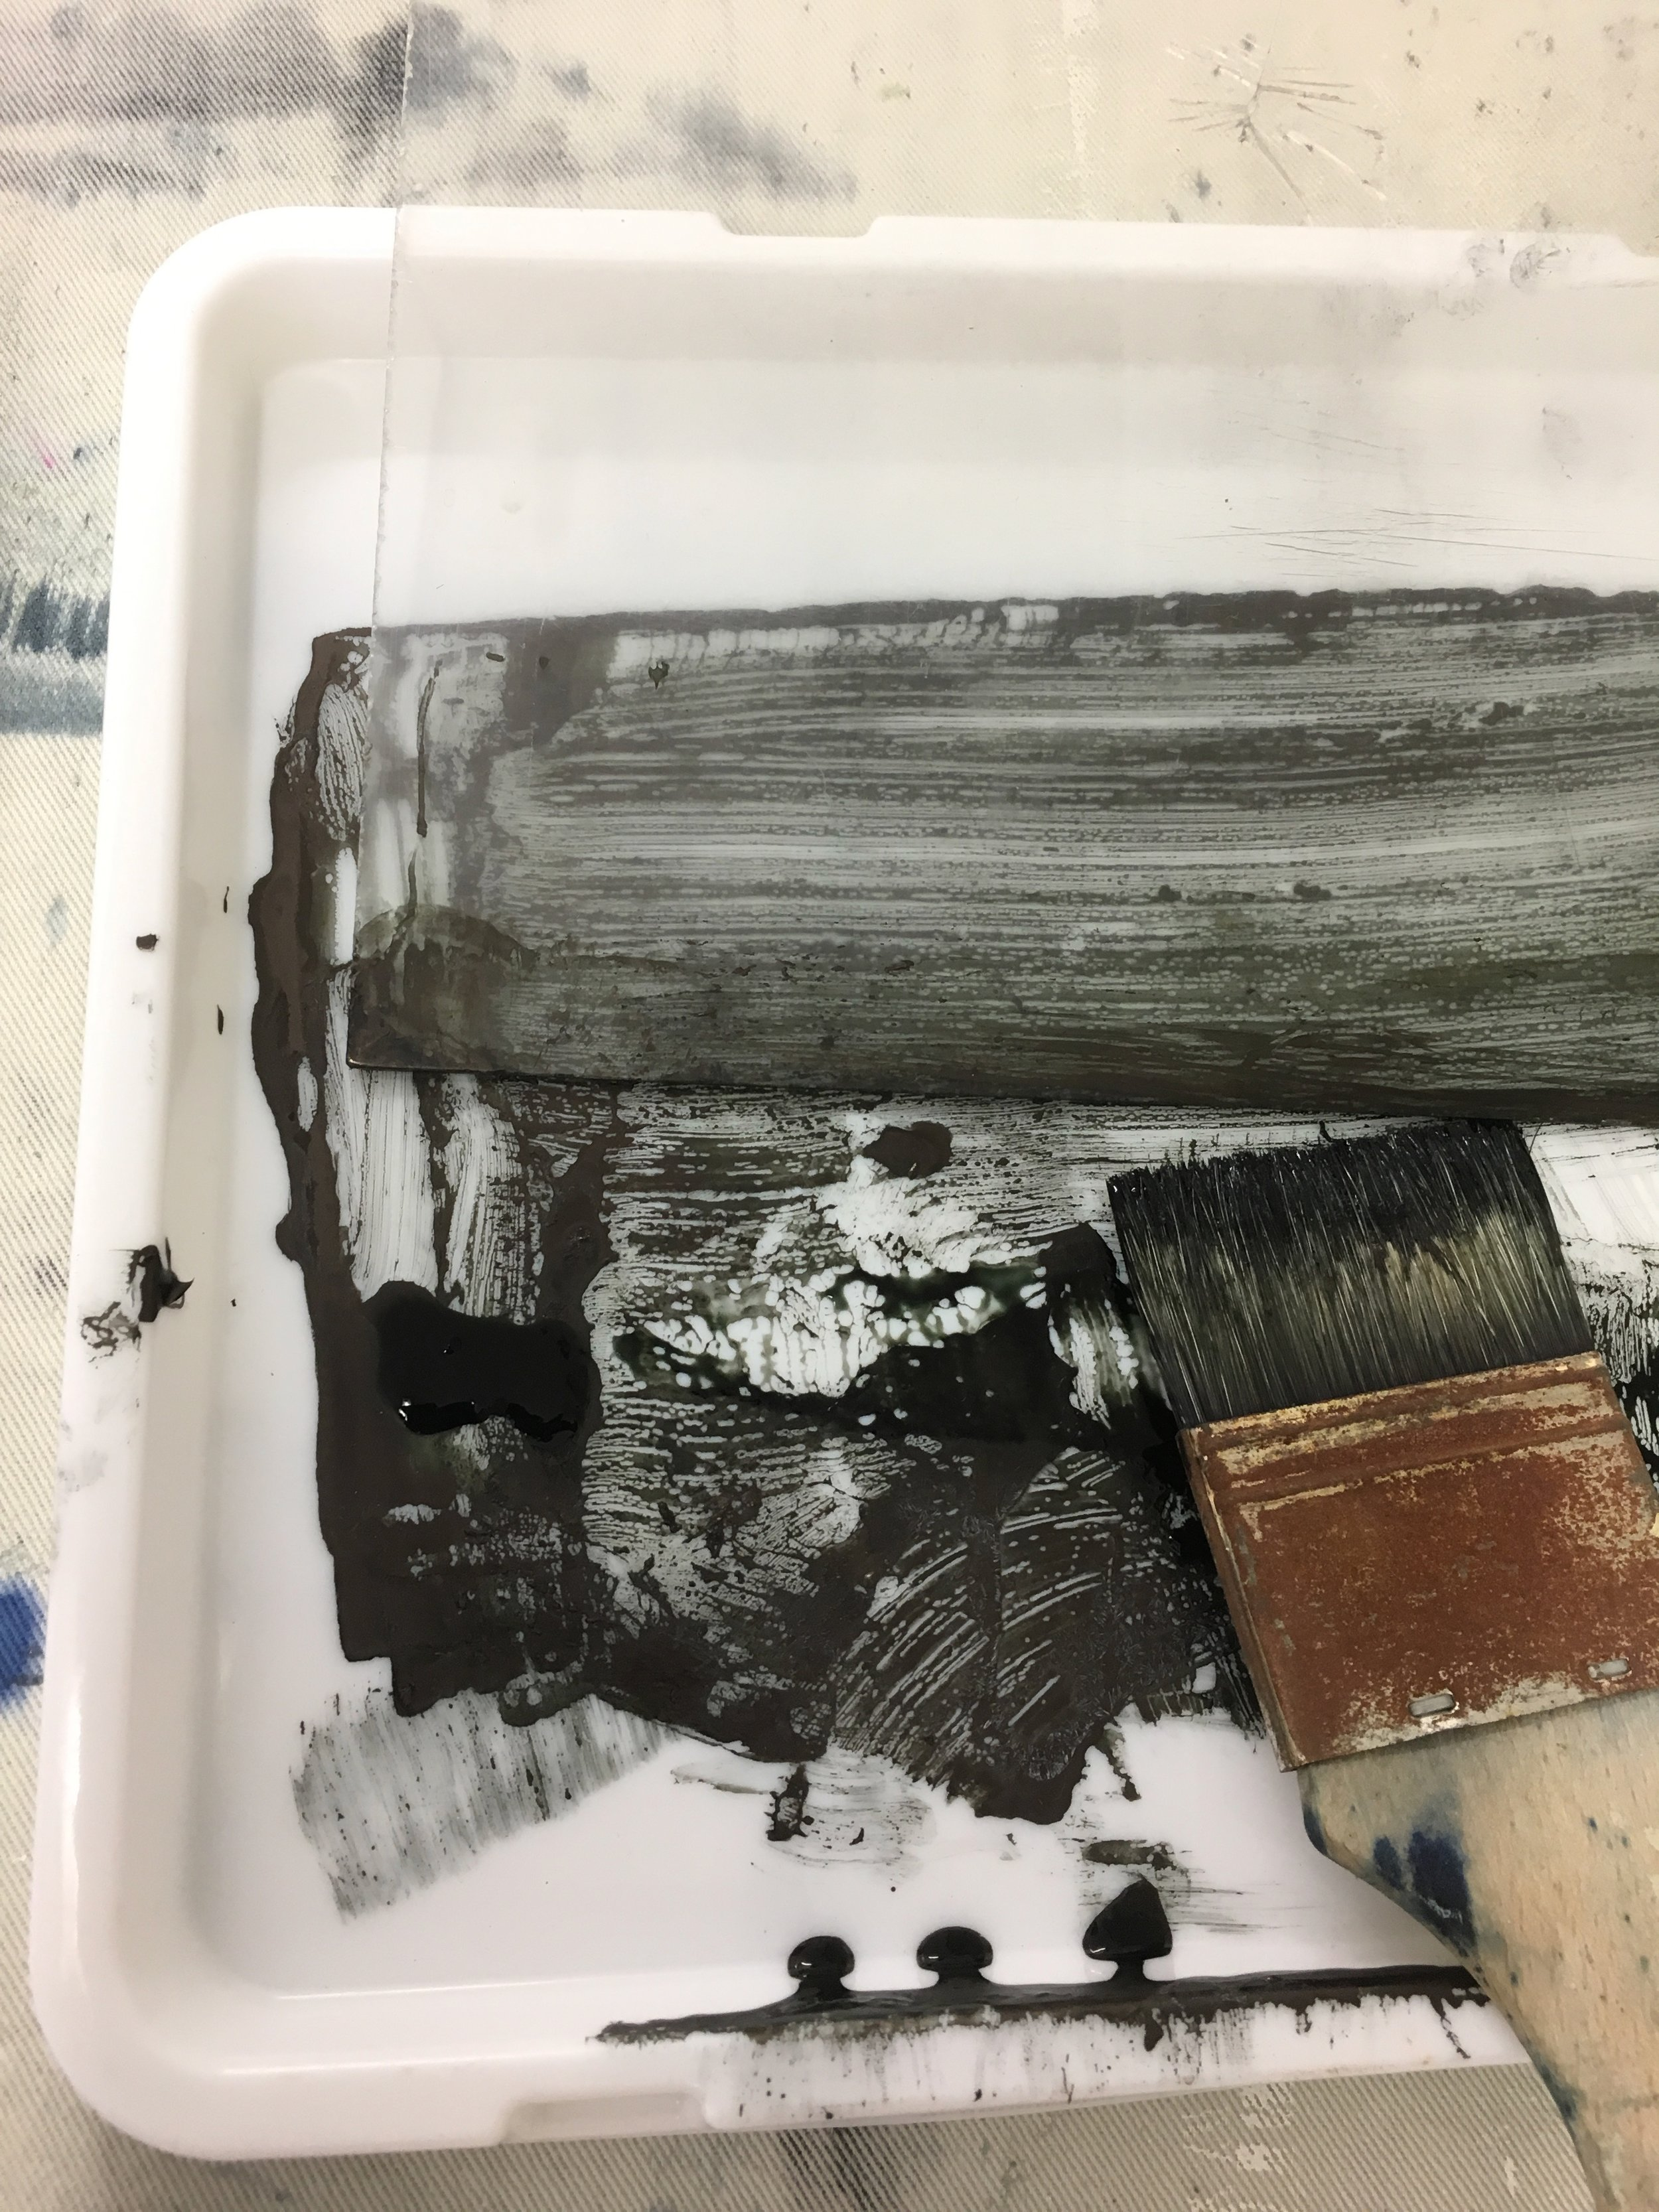 Helen's palette in the studio - For the main part of the day we undertook some practical experimentation with media and imagery.